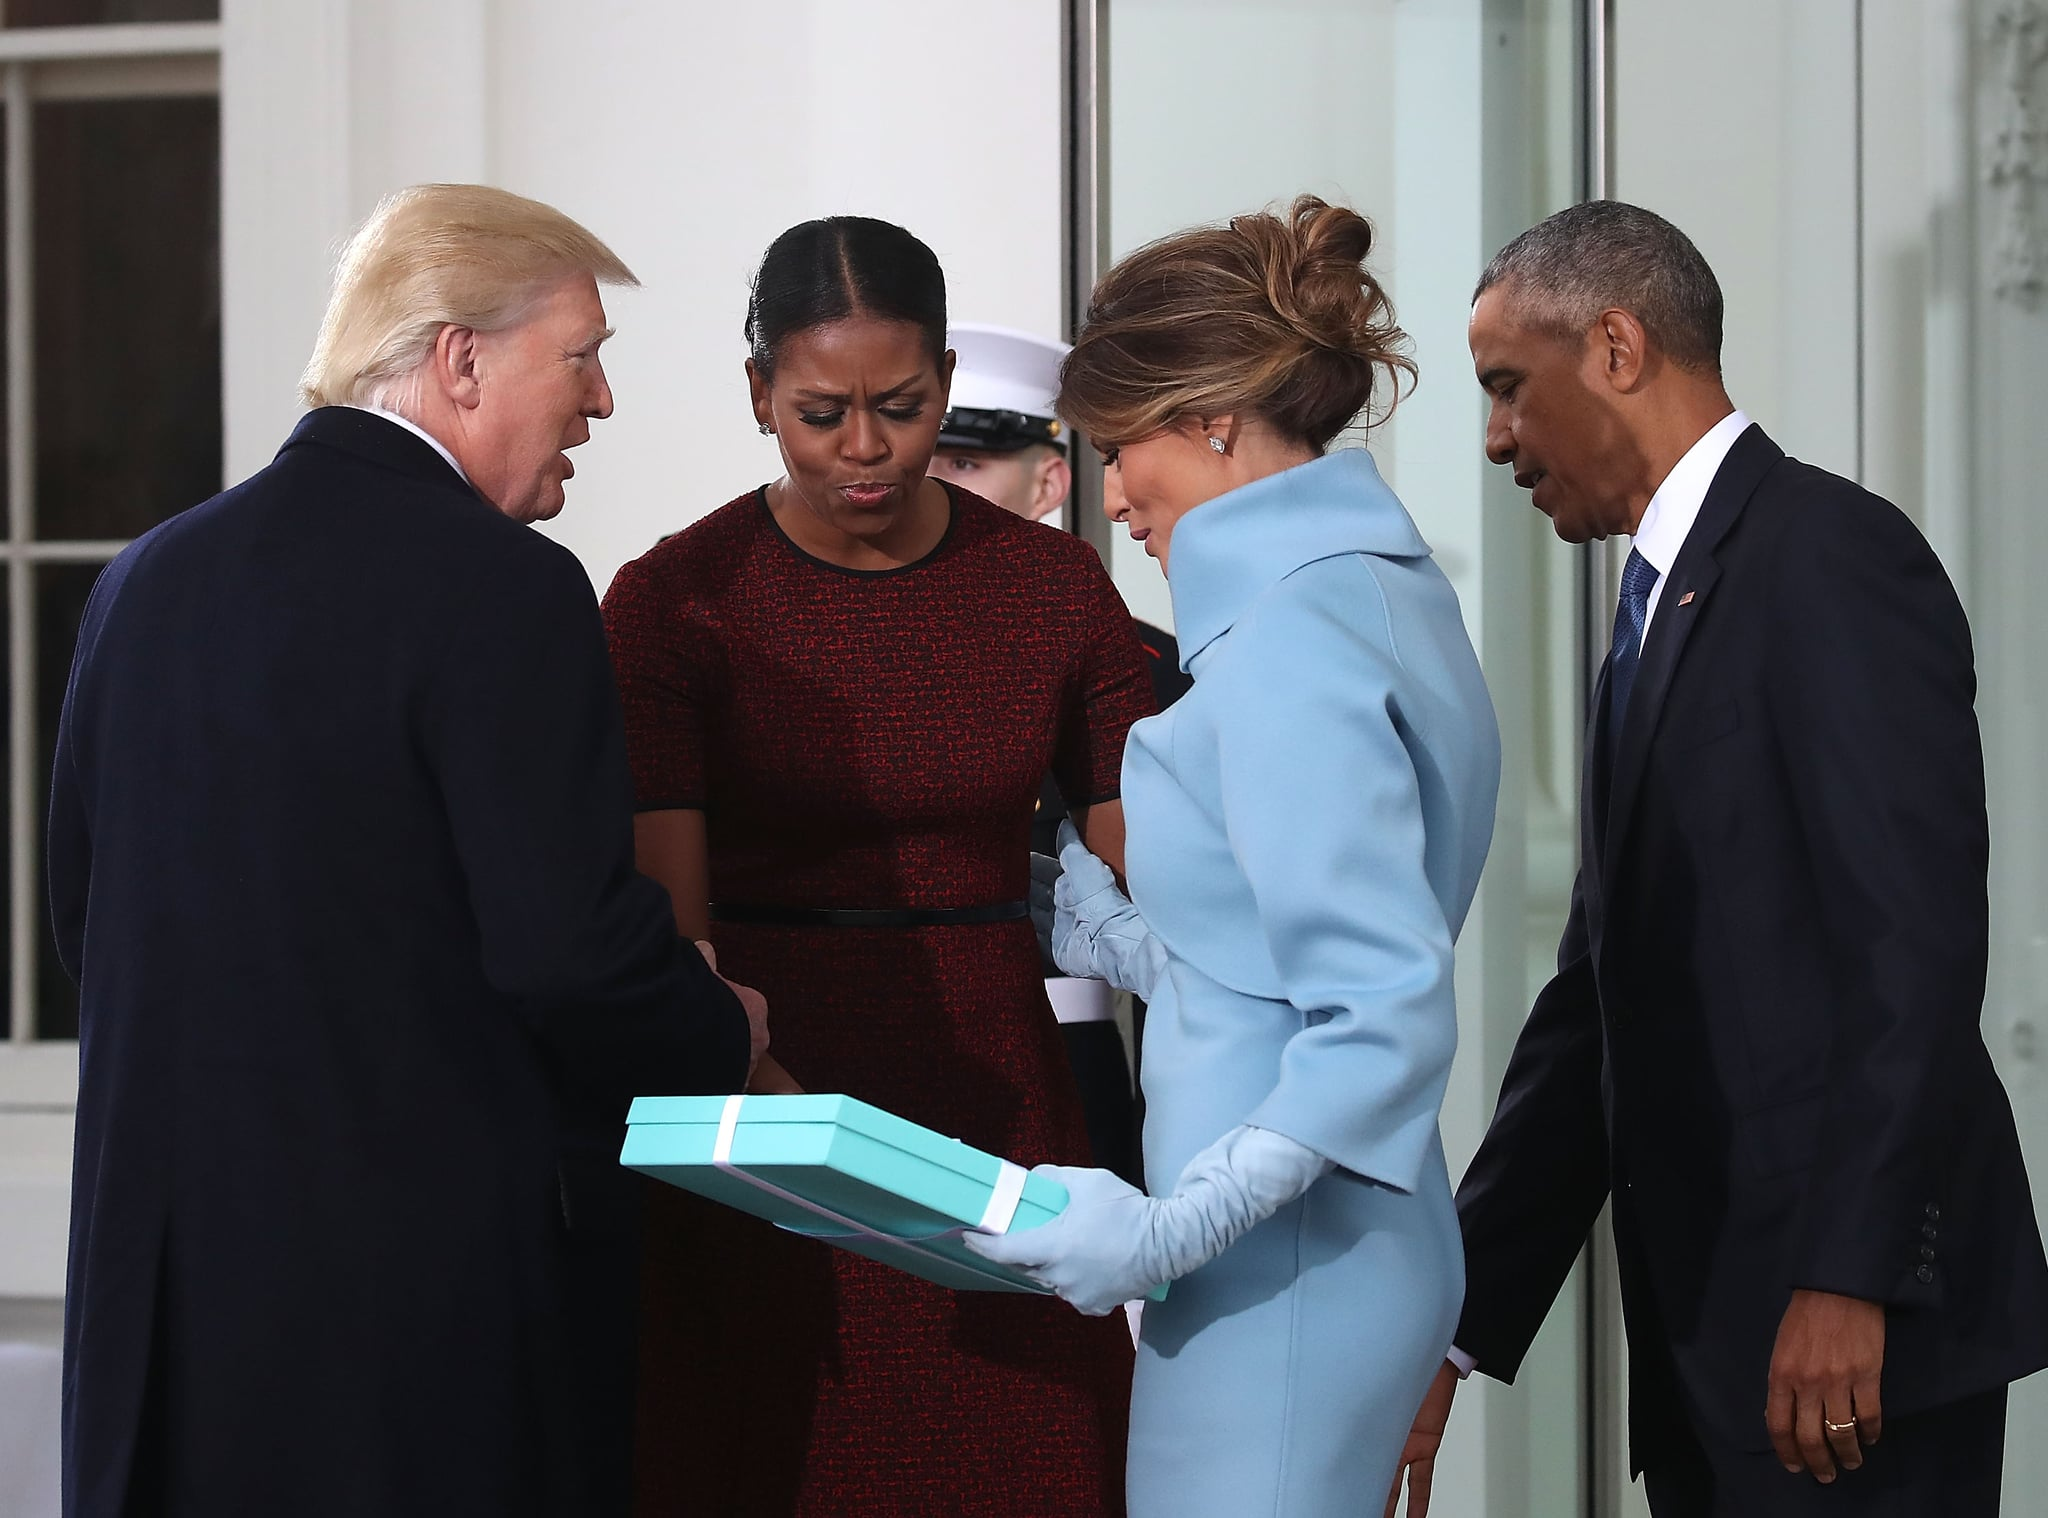 1cef5464671a7612_GettyImages 632184312 michelle obama responds to melania trump gift meme popsugar news